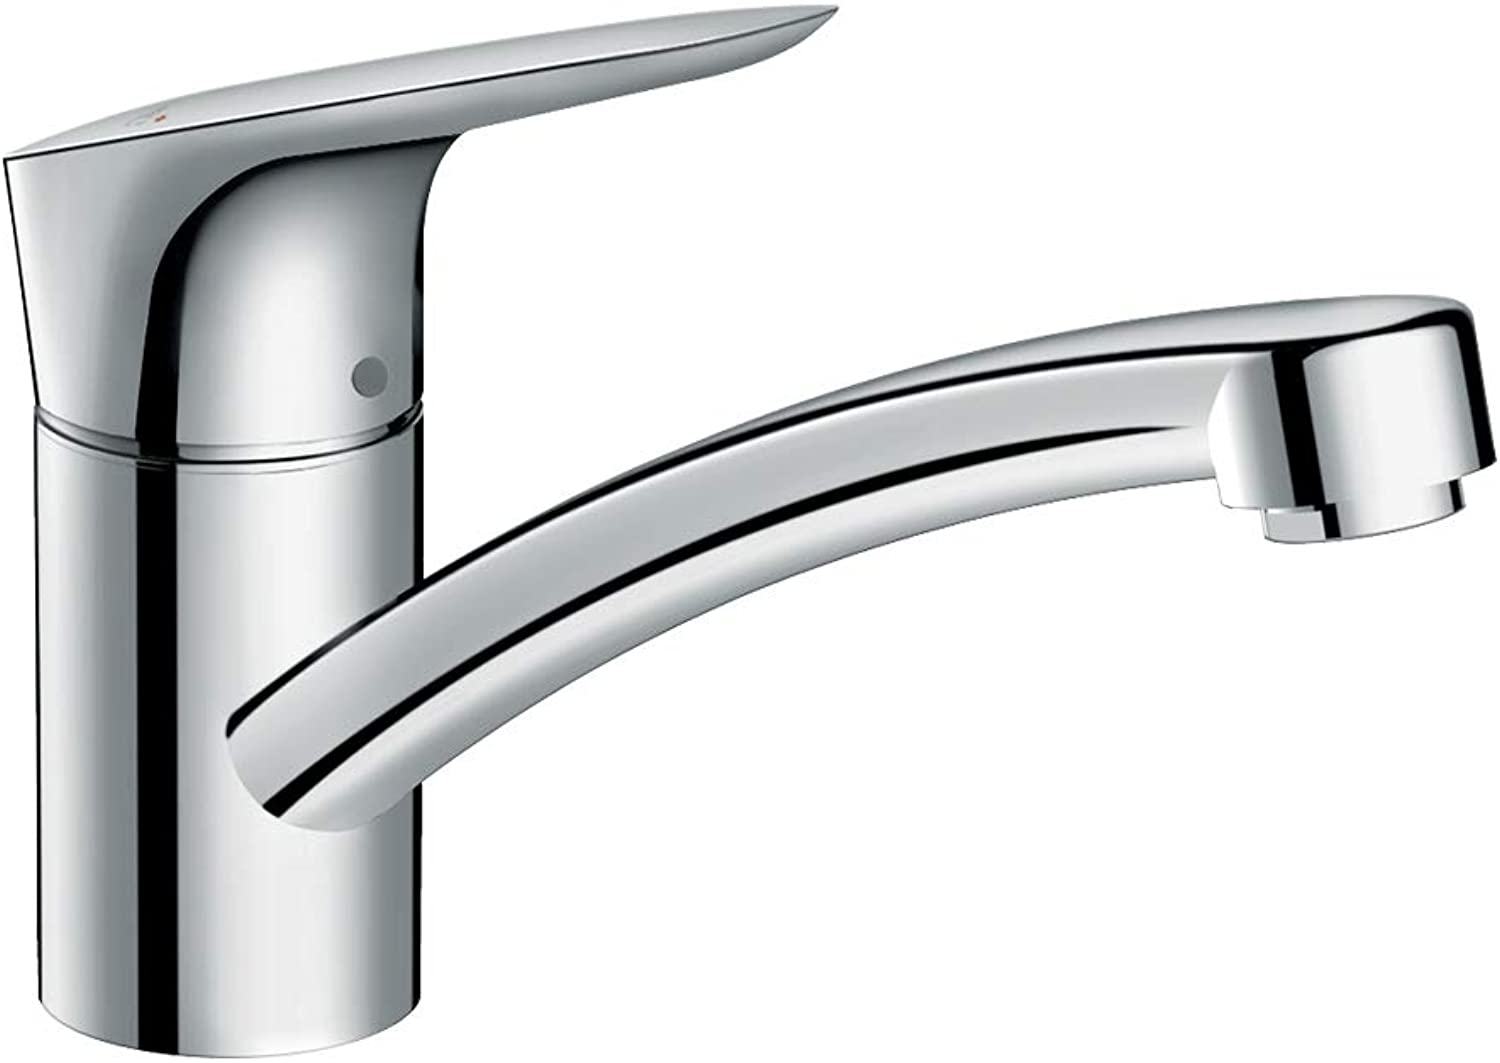 Hansgrohe Logis kitchen tap 120 mm high with 360° swivel spout, CoolStart energy saving function and reduced flow rate, chrome 71837000